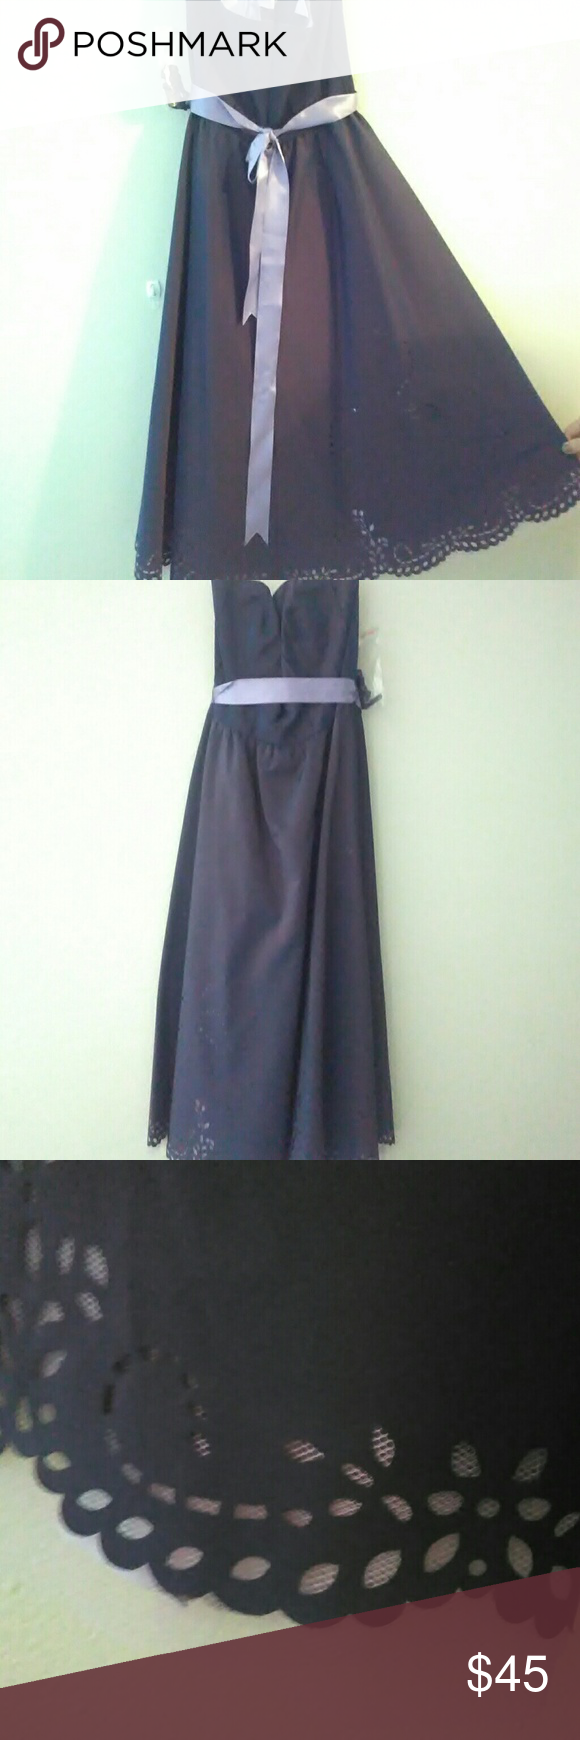 NWT Stunning V neck gown Nwt Stunning simi deep V neck purple and lavender gown with amazing detail on the bottom that goes up the dress in some spots Dresses Prom